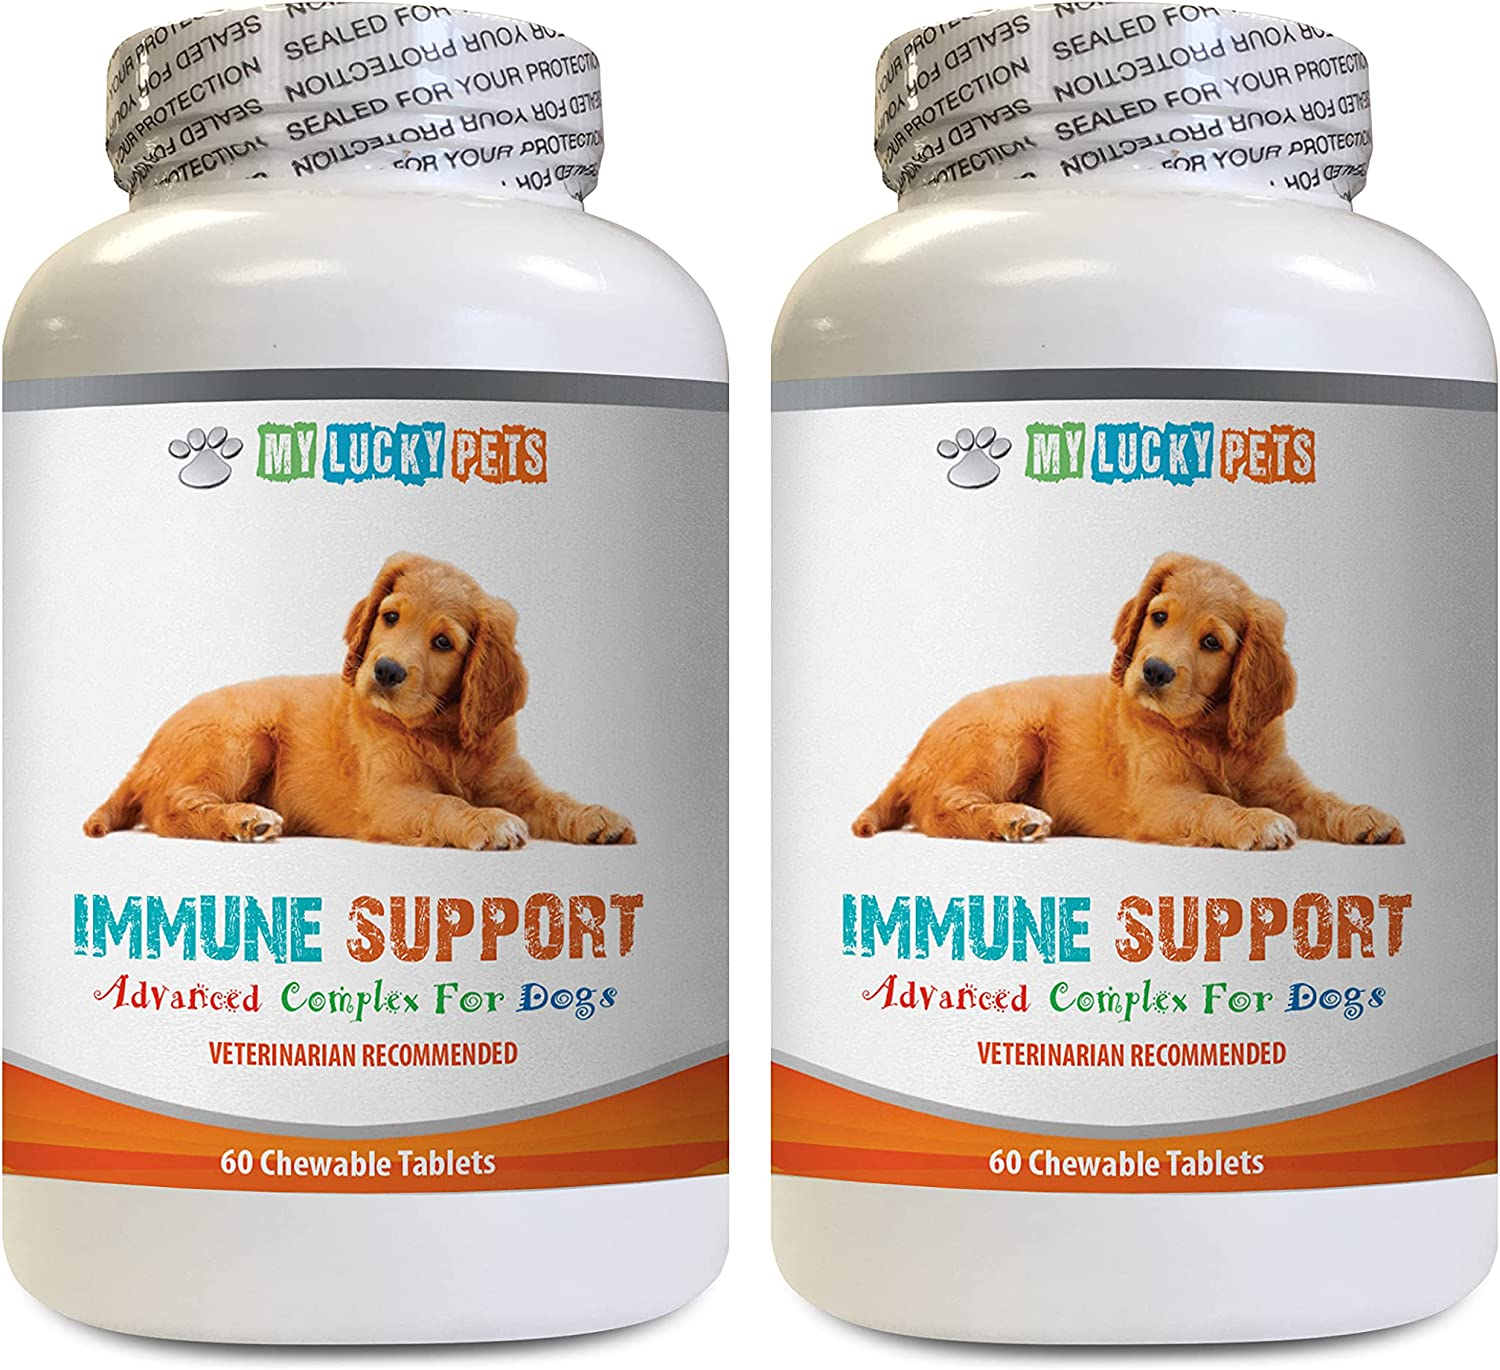 Allergy Immune Bites for Dogs Hea Support - 5 ☆ popular Overall Dog Our shop most popular